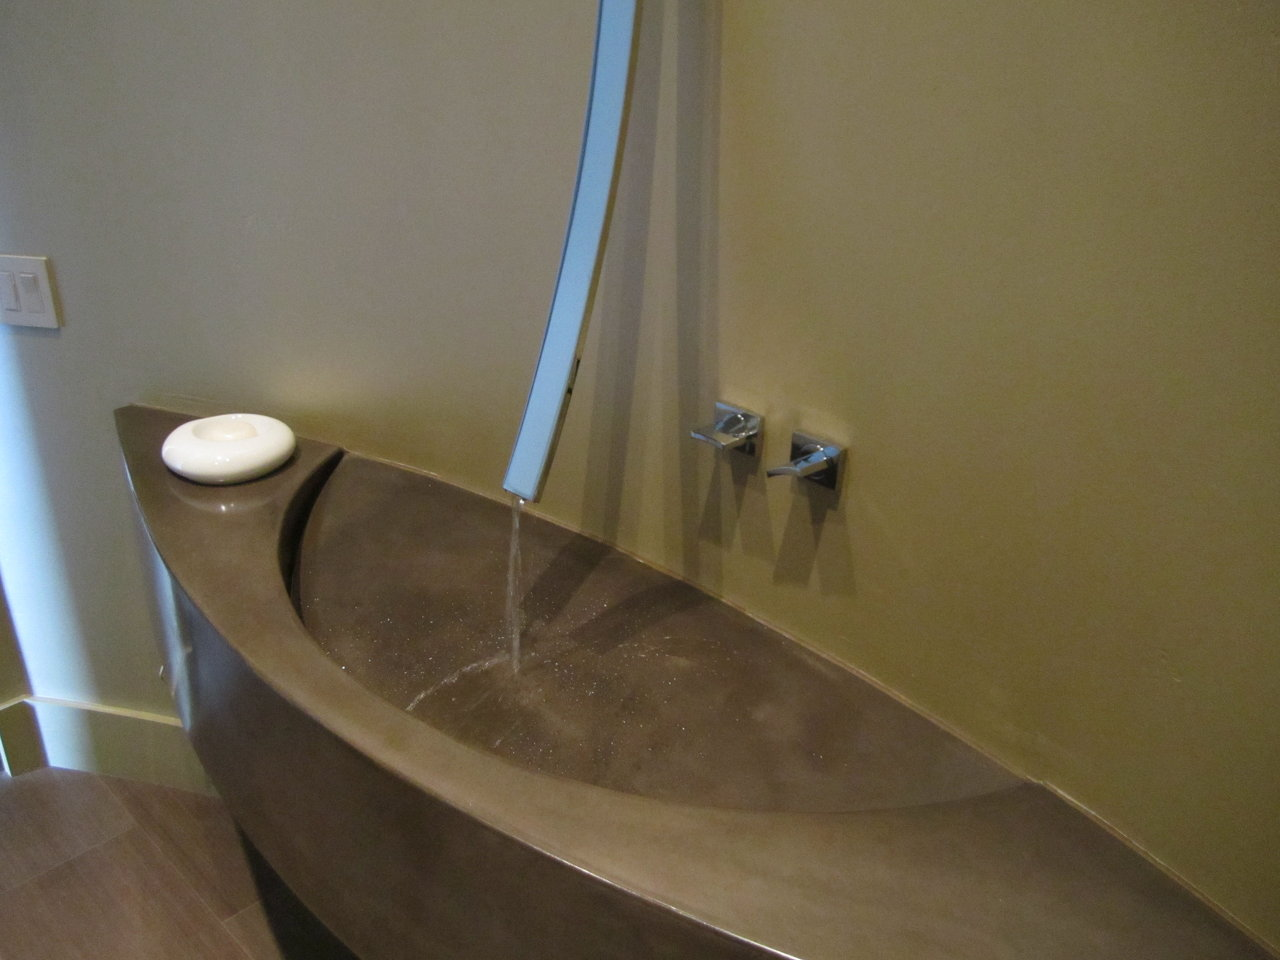 Powder bath sink